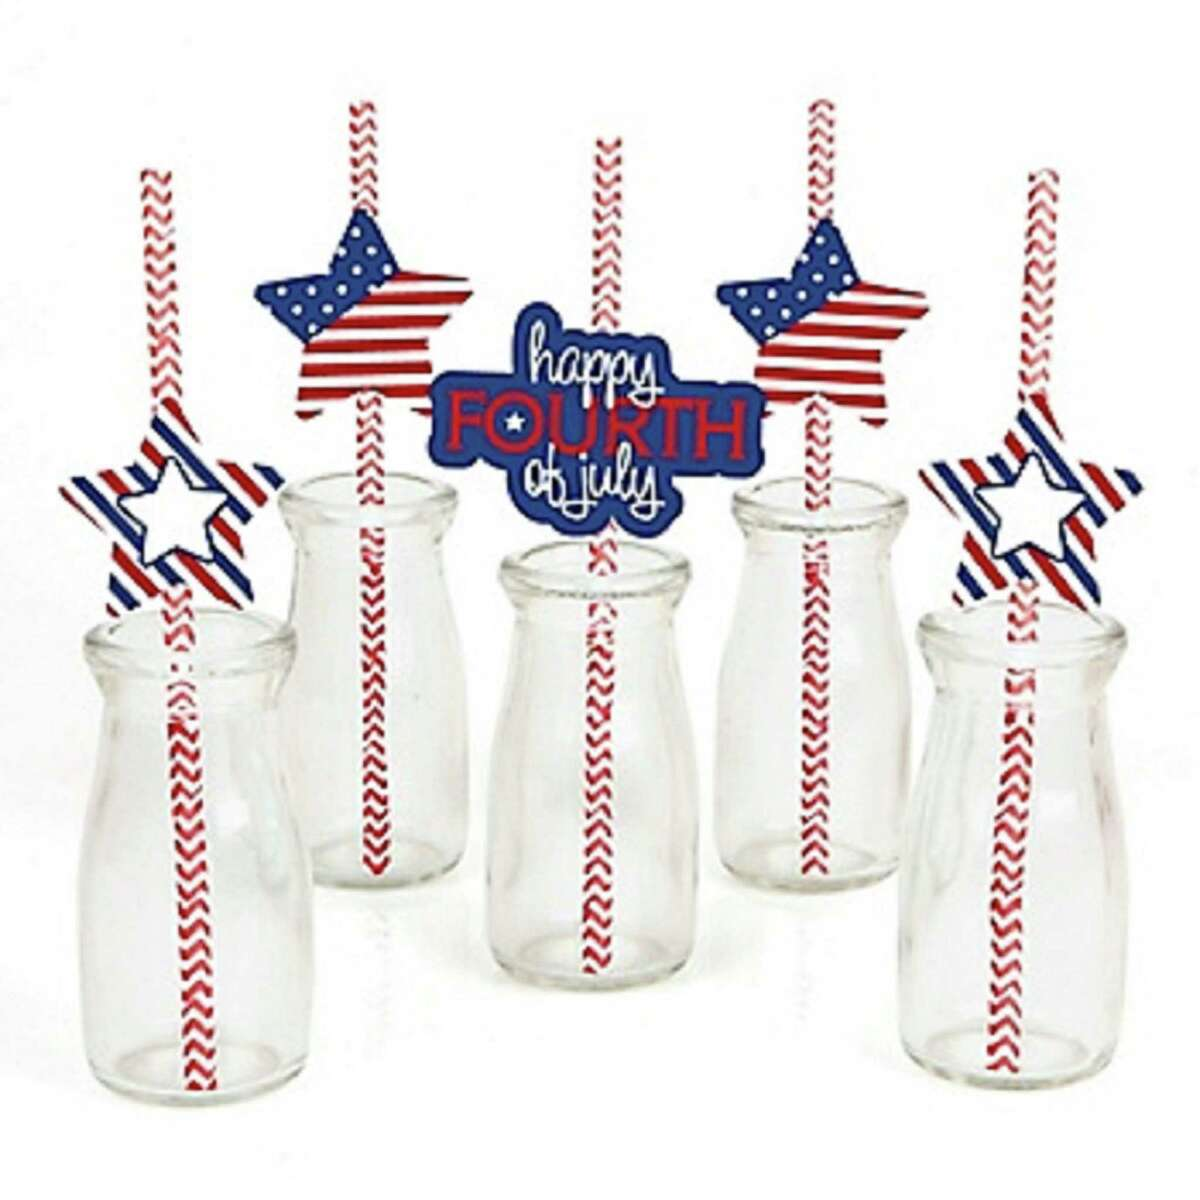 Decorative straws:Kids, and adults who act like them, will love drinking punch or other beverages with these festive stars-and-stripes themed party straws. The DIY kit comes with stickers, paper cutouts and straws, and you can use them for straws or as cupcake decorations. $16.90 (set of 25); jet.com